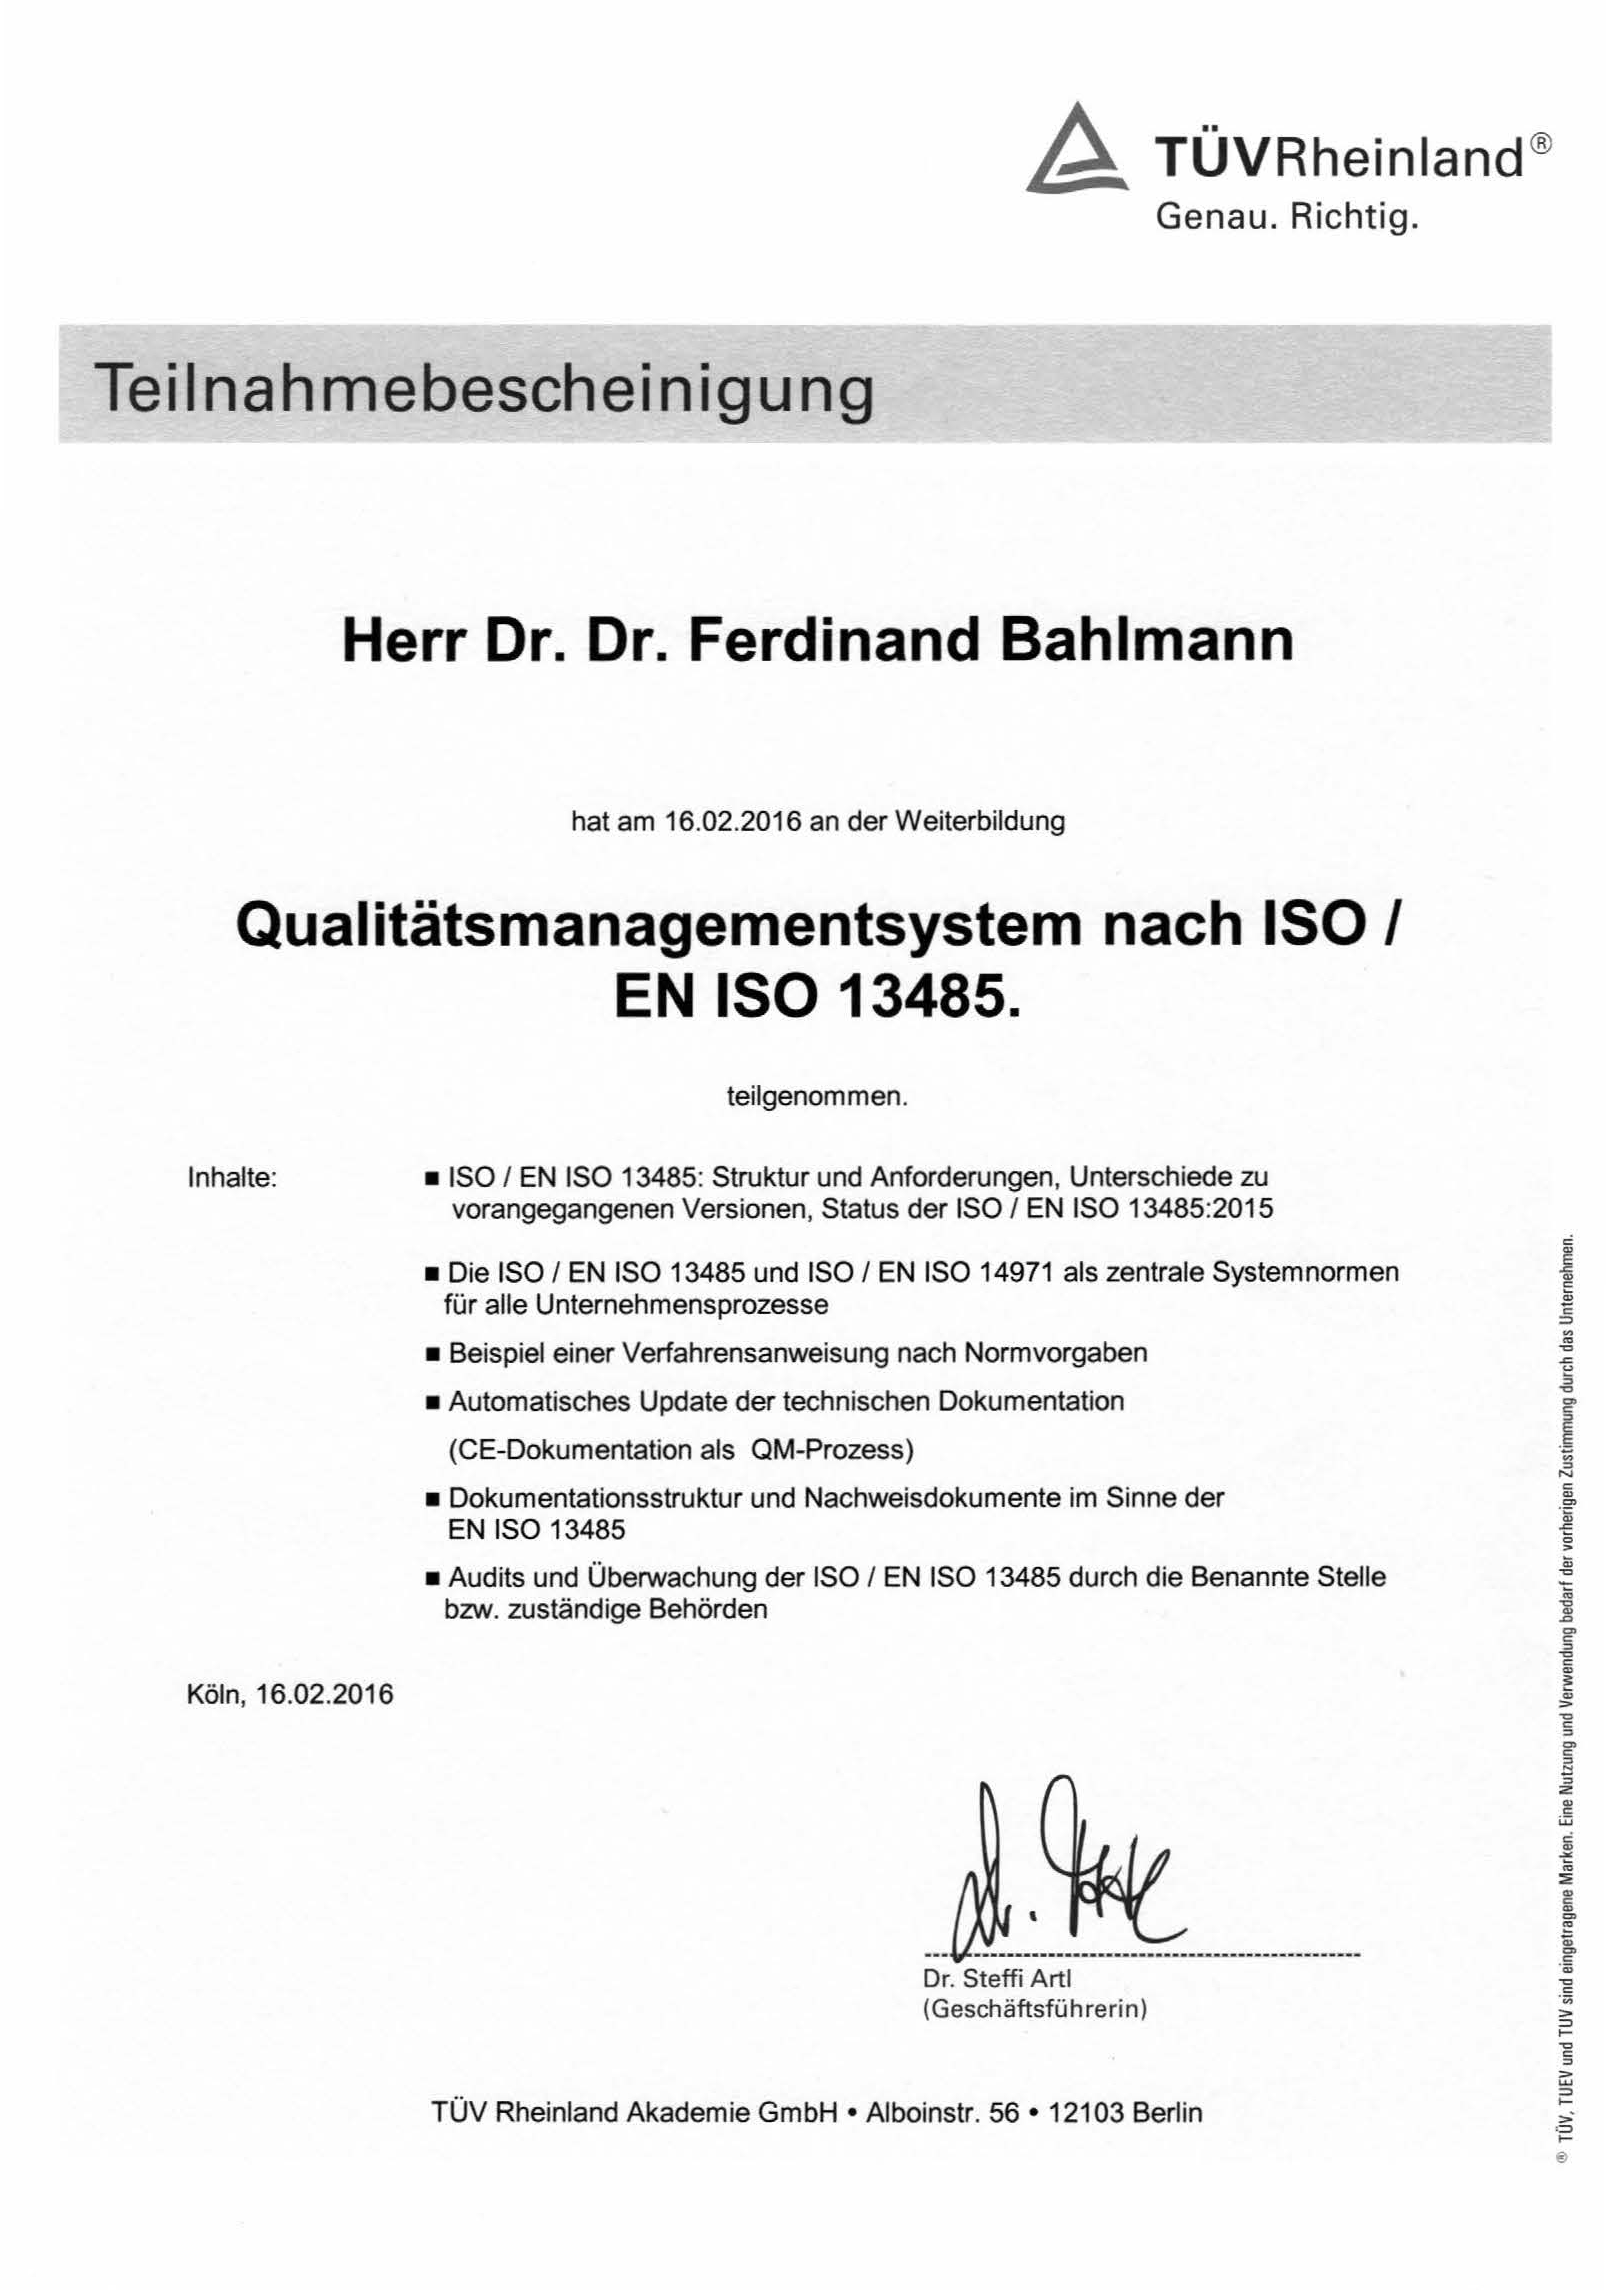 Mein Lebenslauf – Bahlmann Life Science Consulting